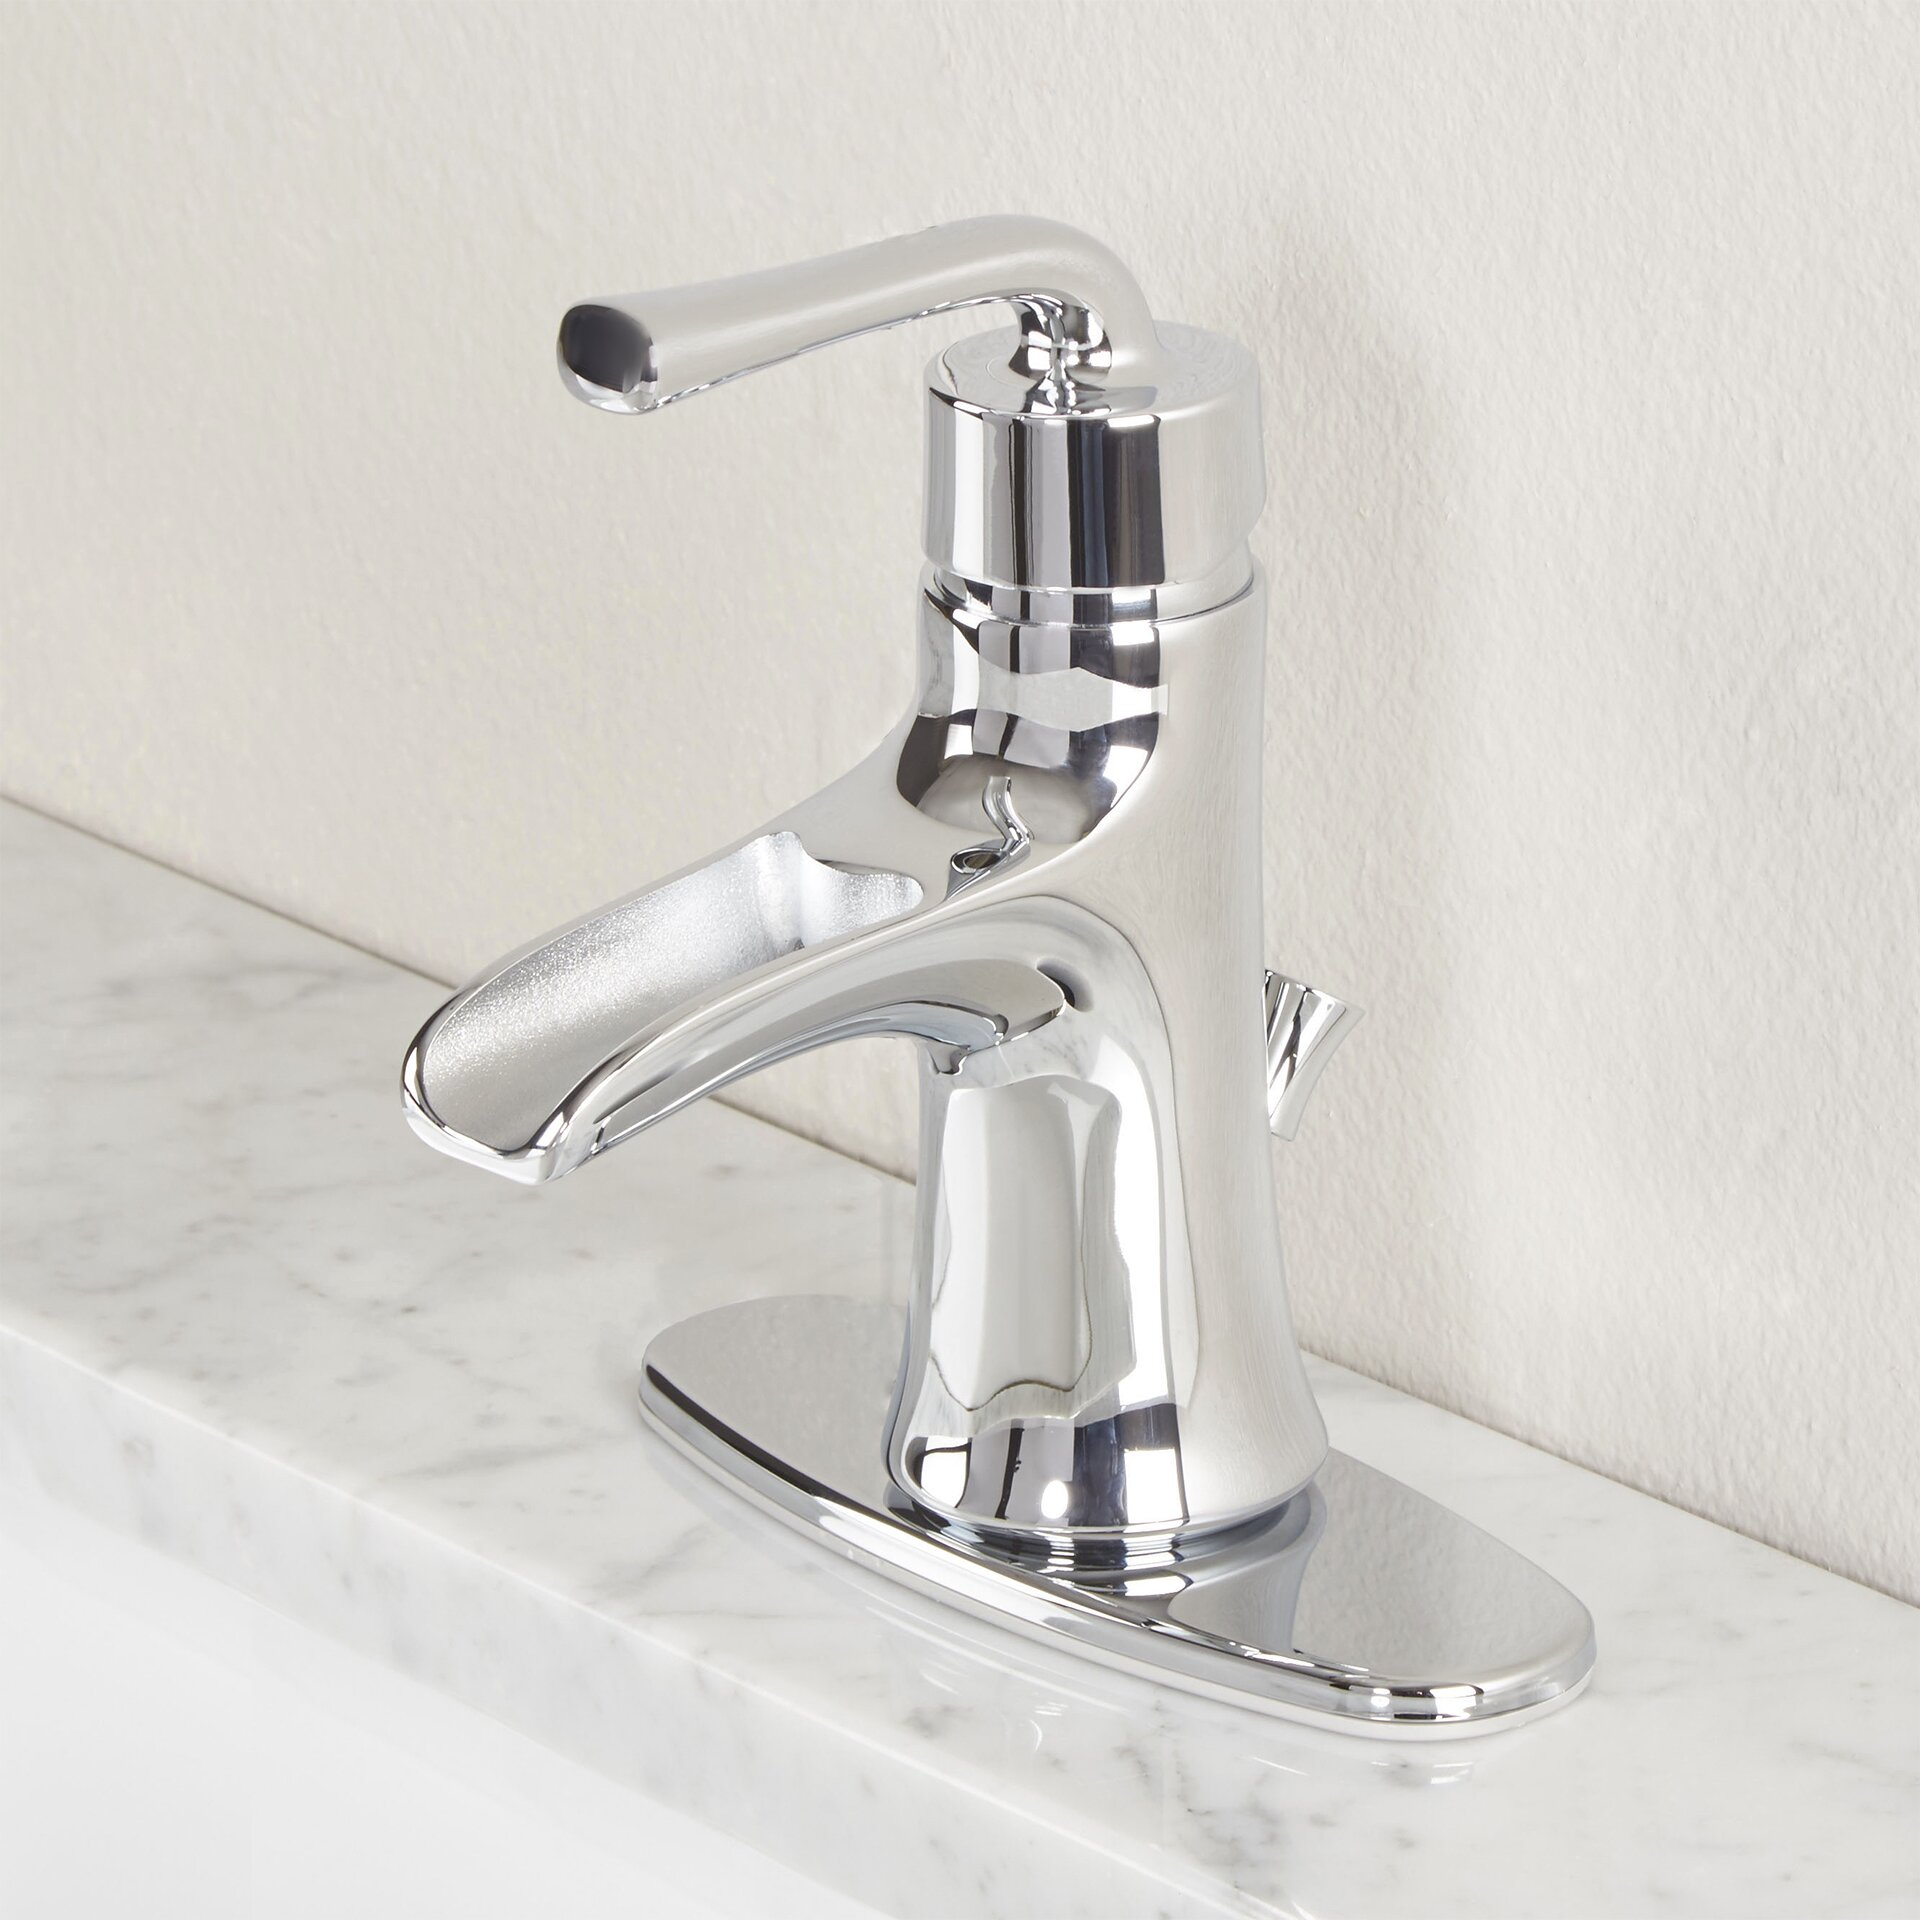 Toilet Faucet : Bathroom Fixtures ... Single Hole Bathroom Sink Faucets Premier Faucet ...